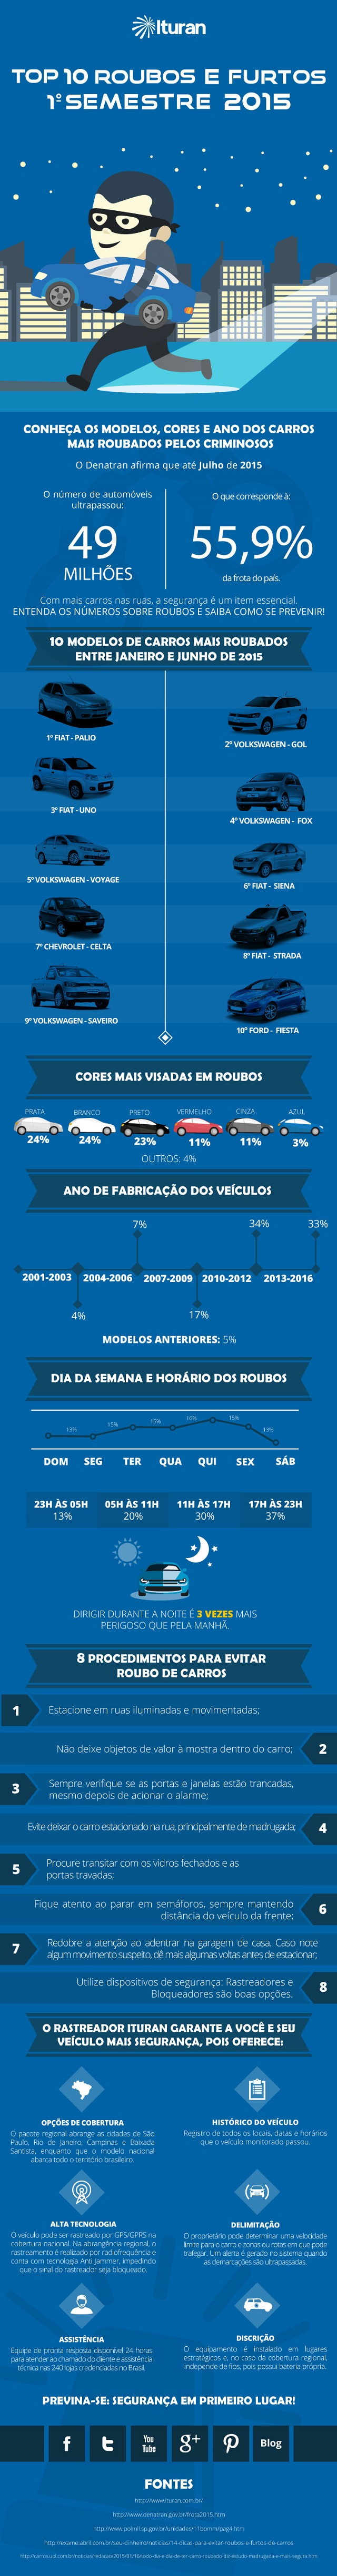 INFOGRAFICO_OUT_2015 (1) (1)